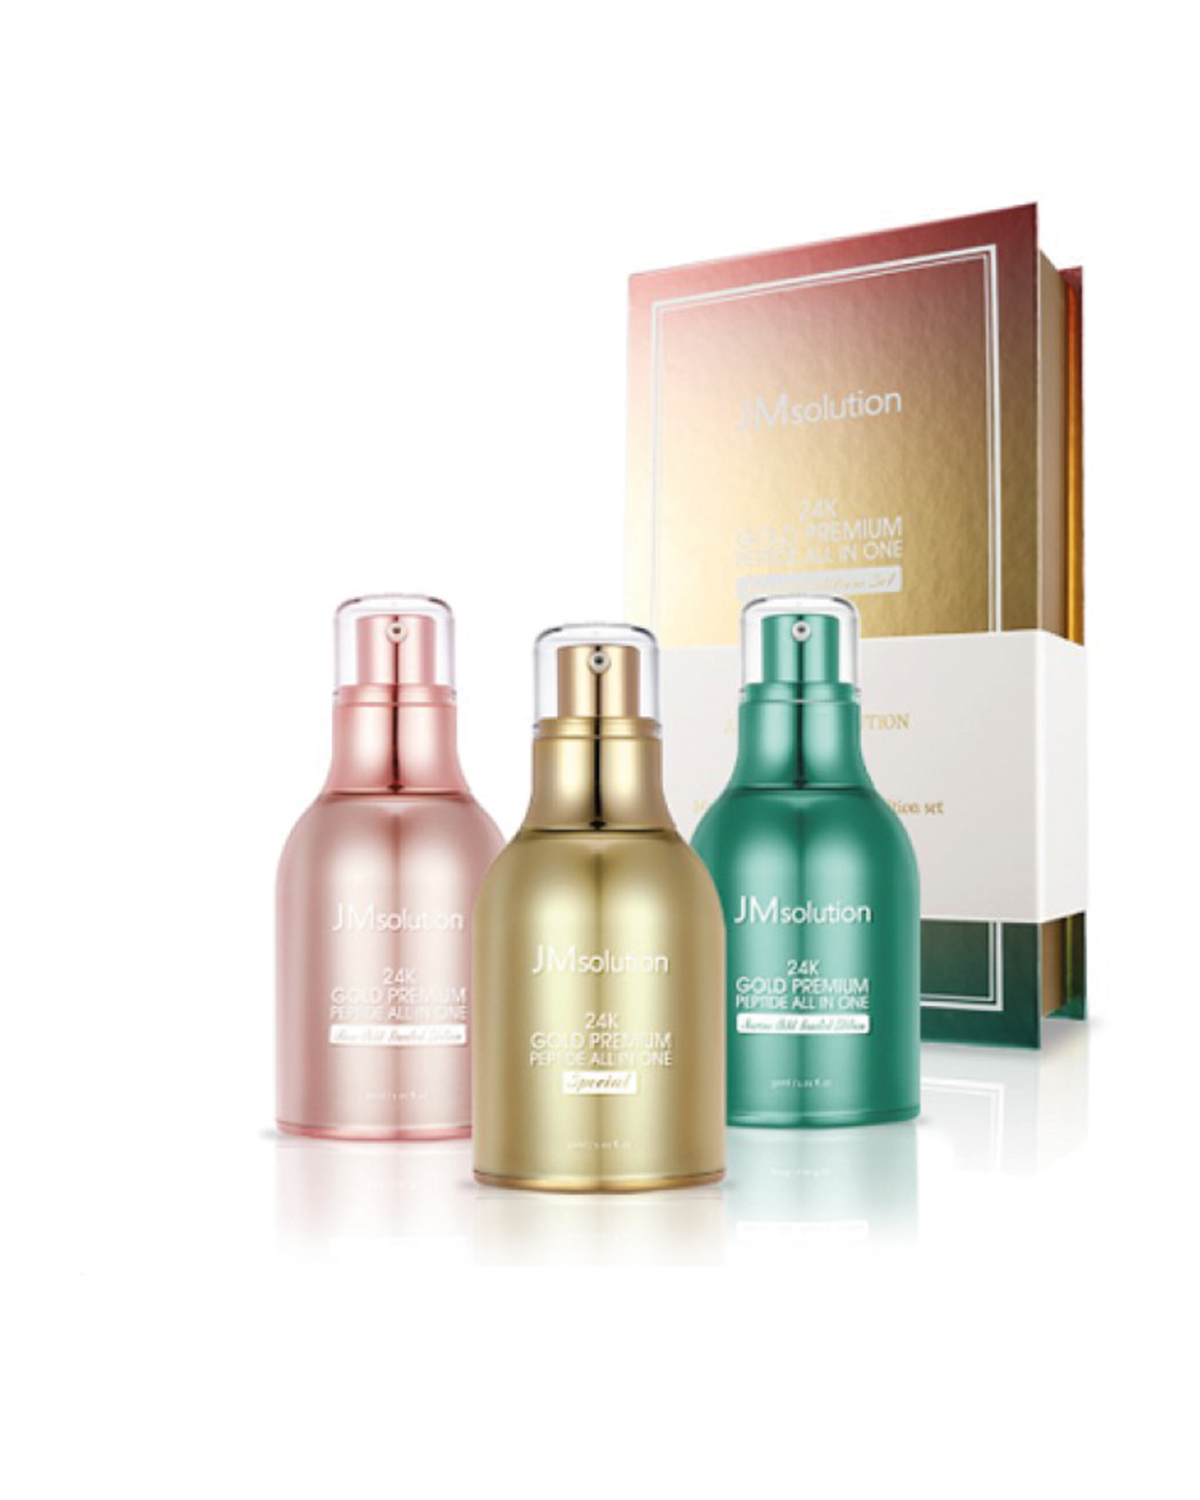 JM SOLUTION 24K Gold Premium Peptide All in One Set